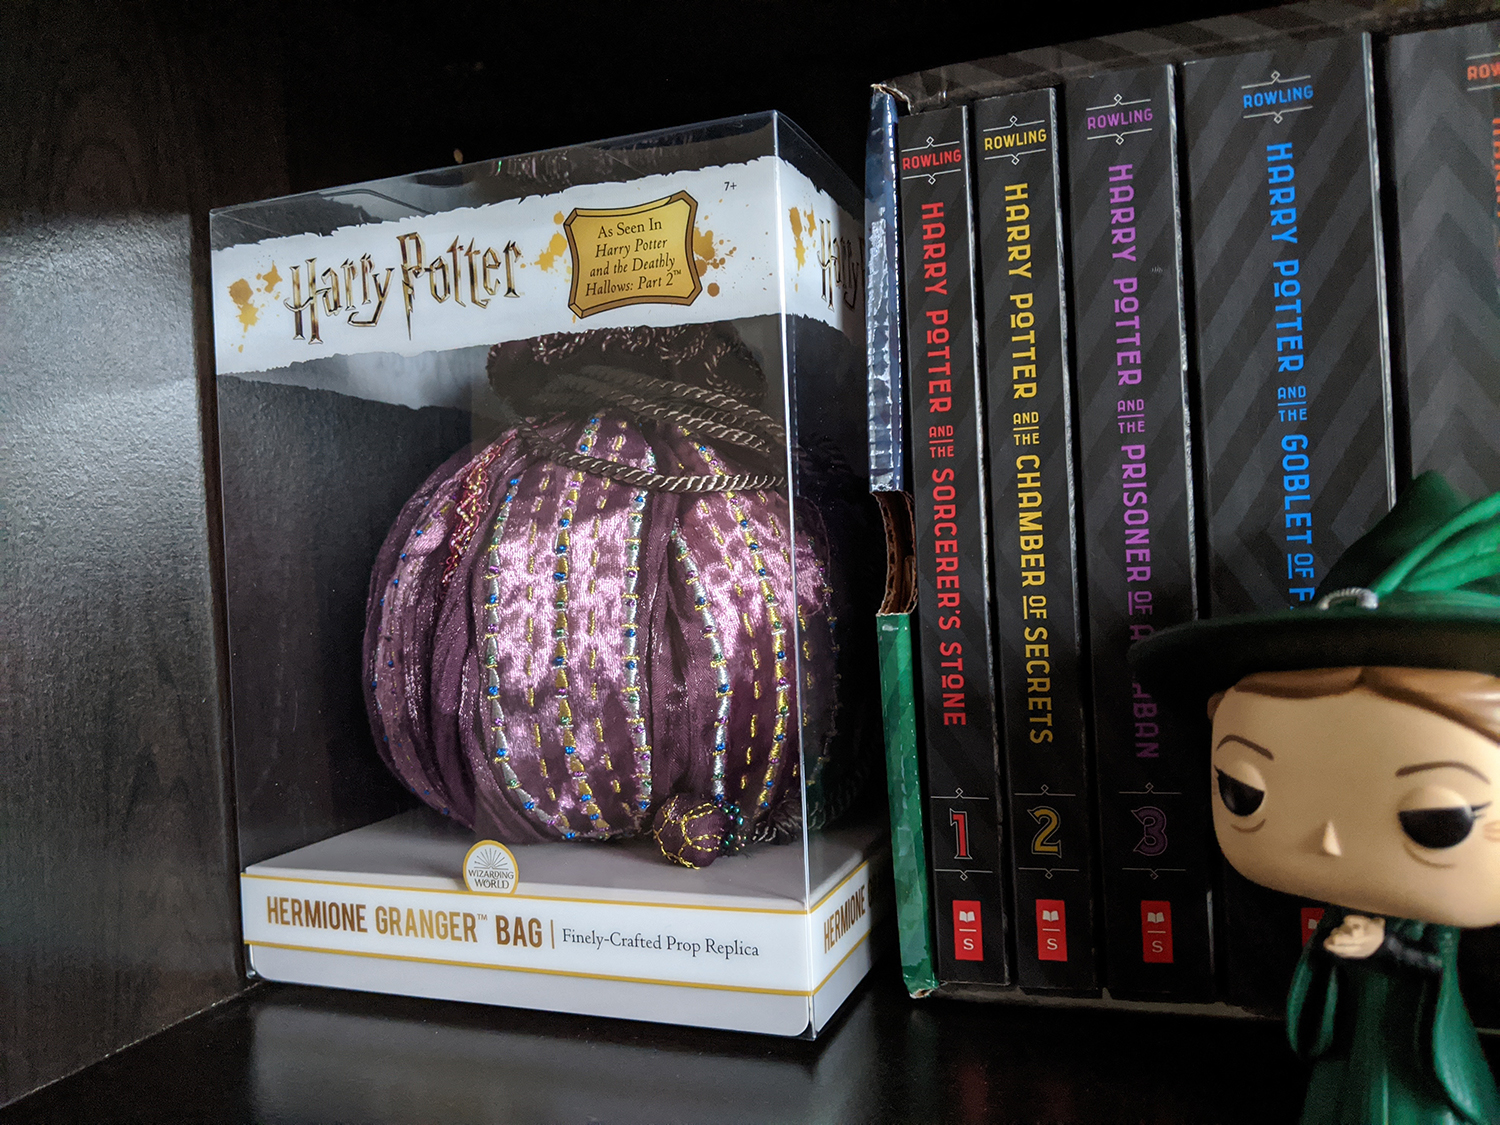 Hermione's bag, packaged on shelf